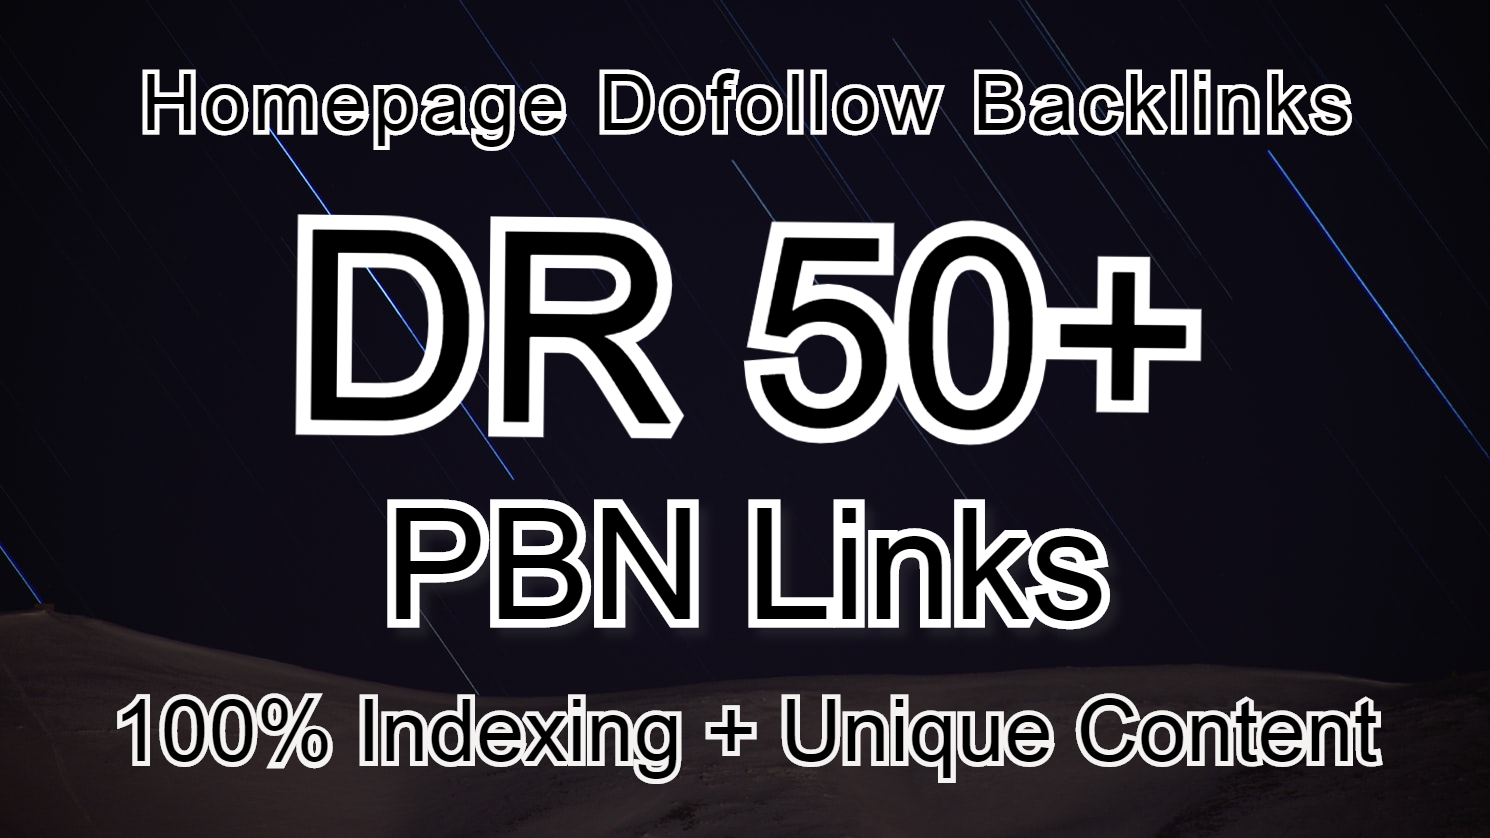 I'll provide you high authority DR 50+ PBN backlink